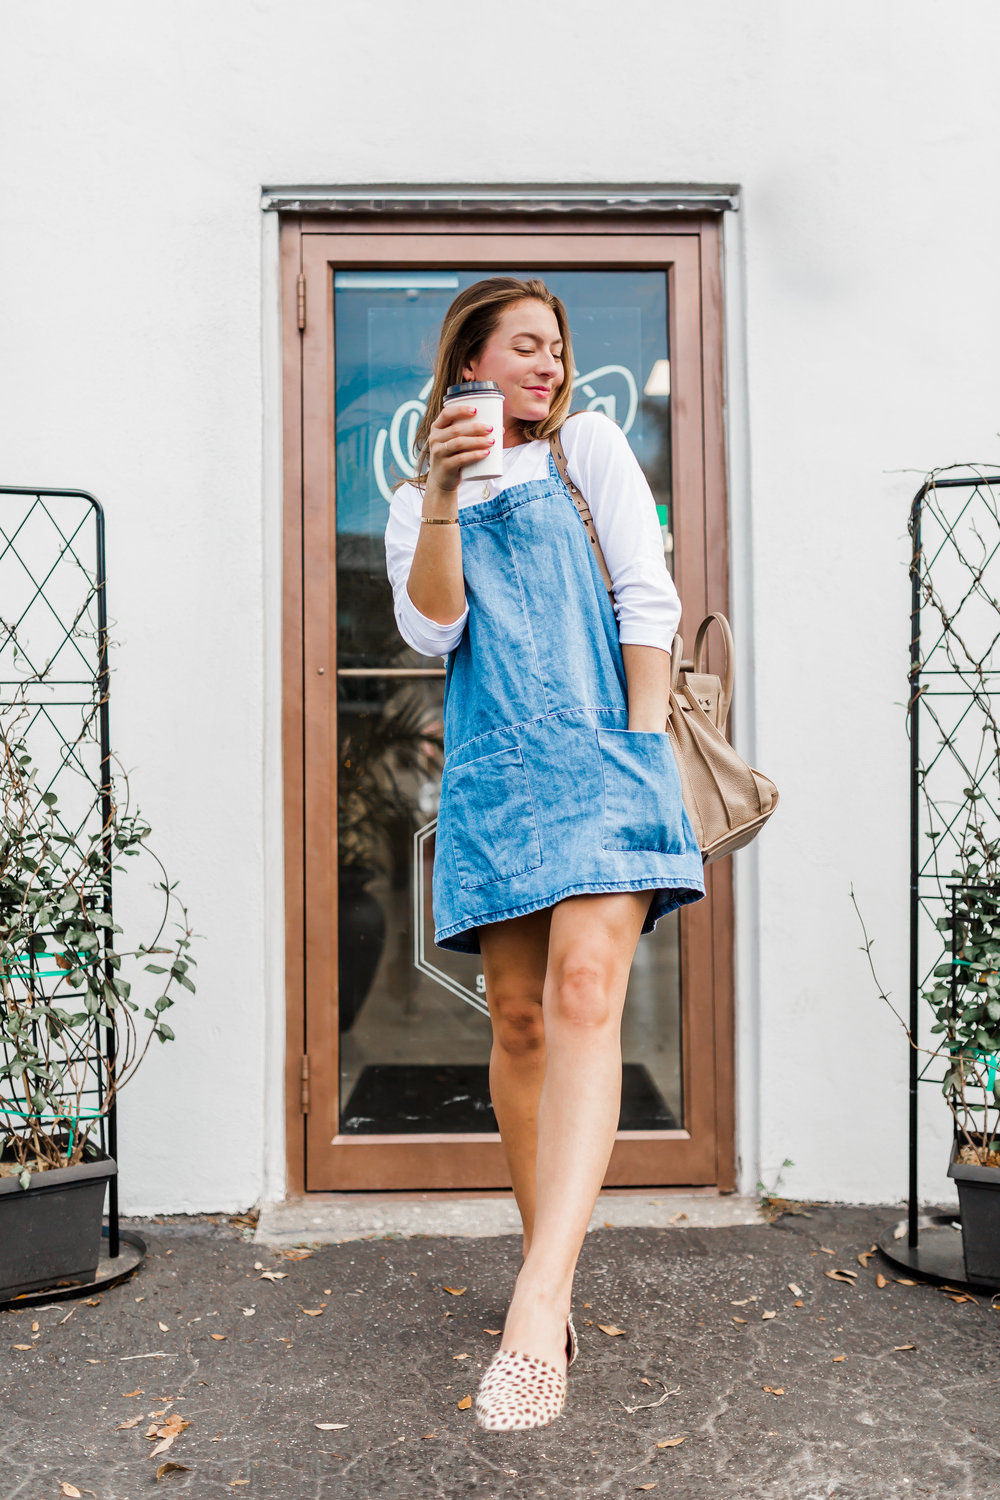 For Your Coffee Date - Denim Jumper: One Teaspoon $139